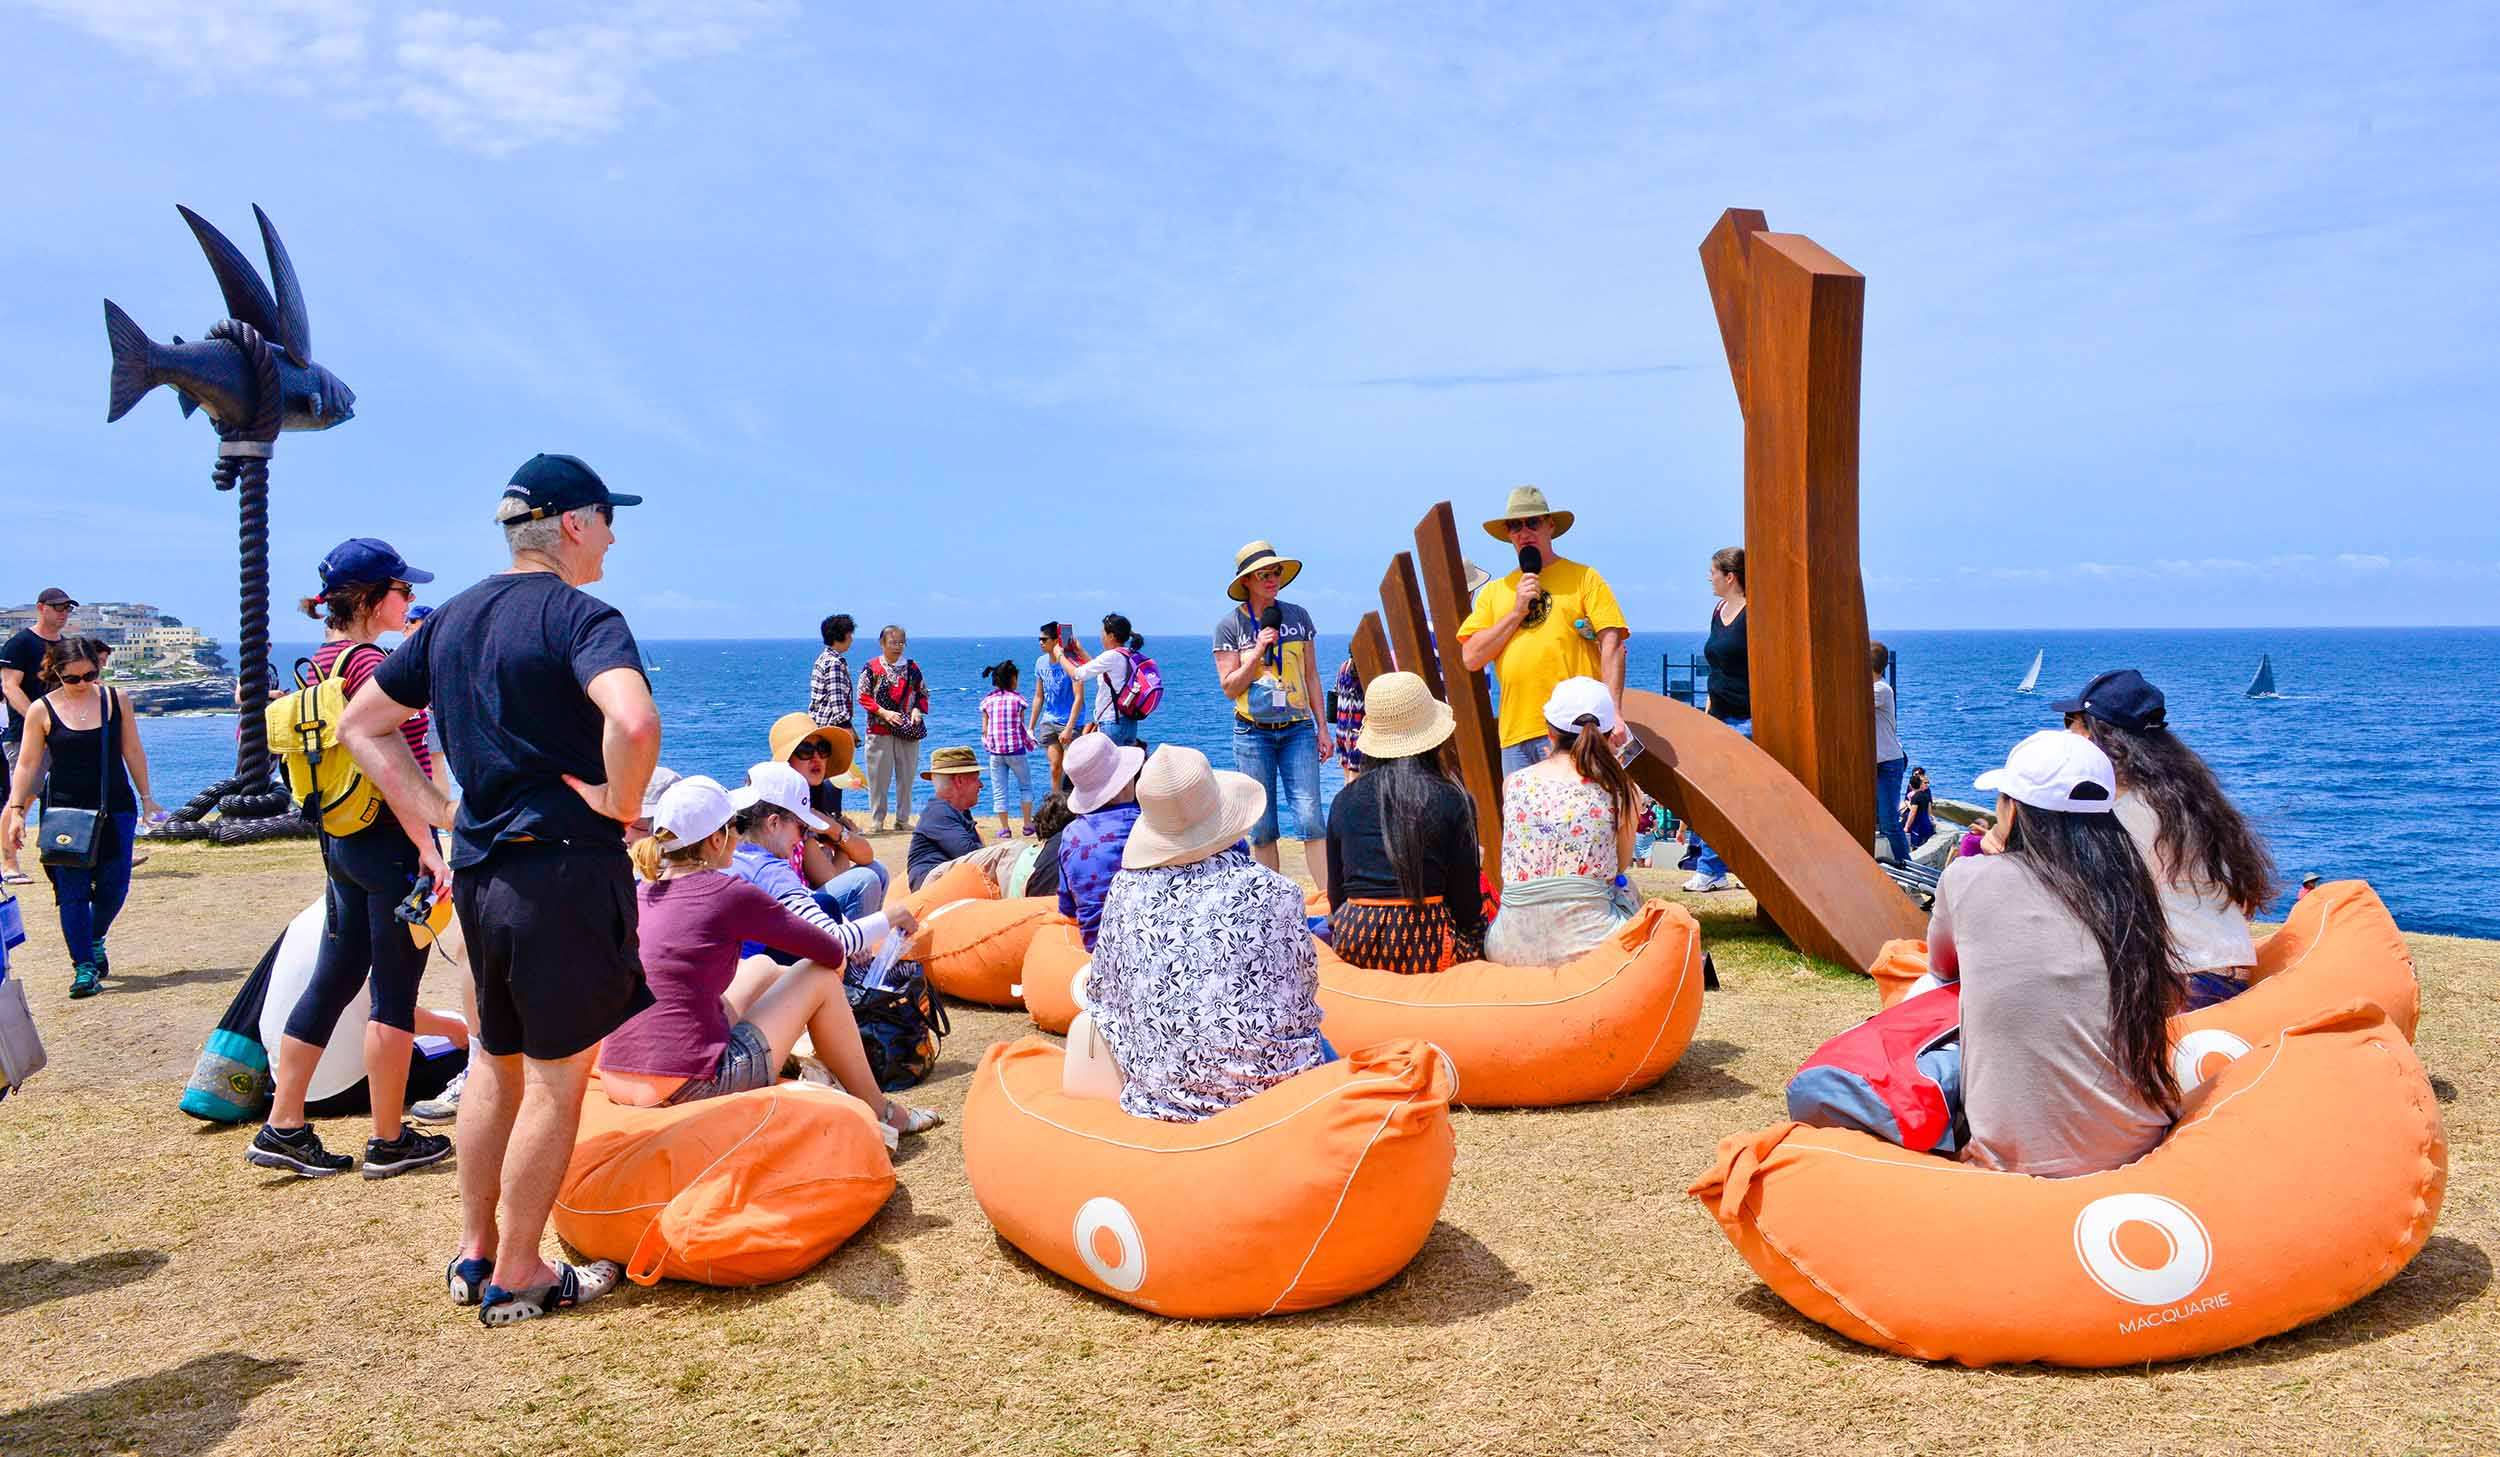 Linda Bowden talking with her sculpture at the Macquarie Artist Talks, Sculpture by the Sea, Bondi 2015. Photo Clyde Yee